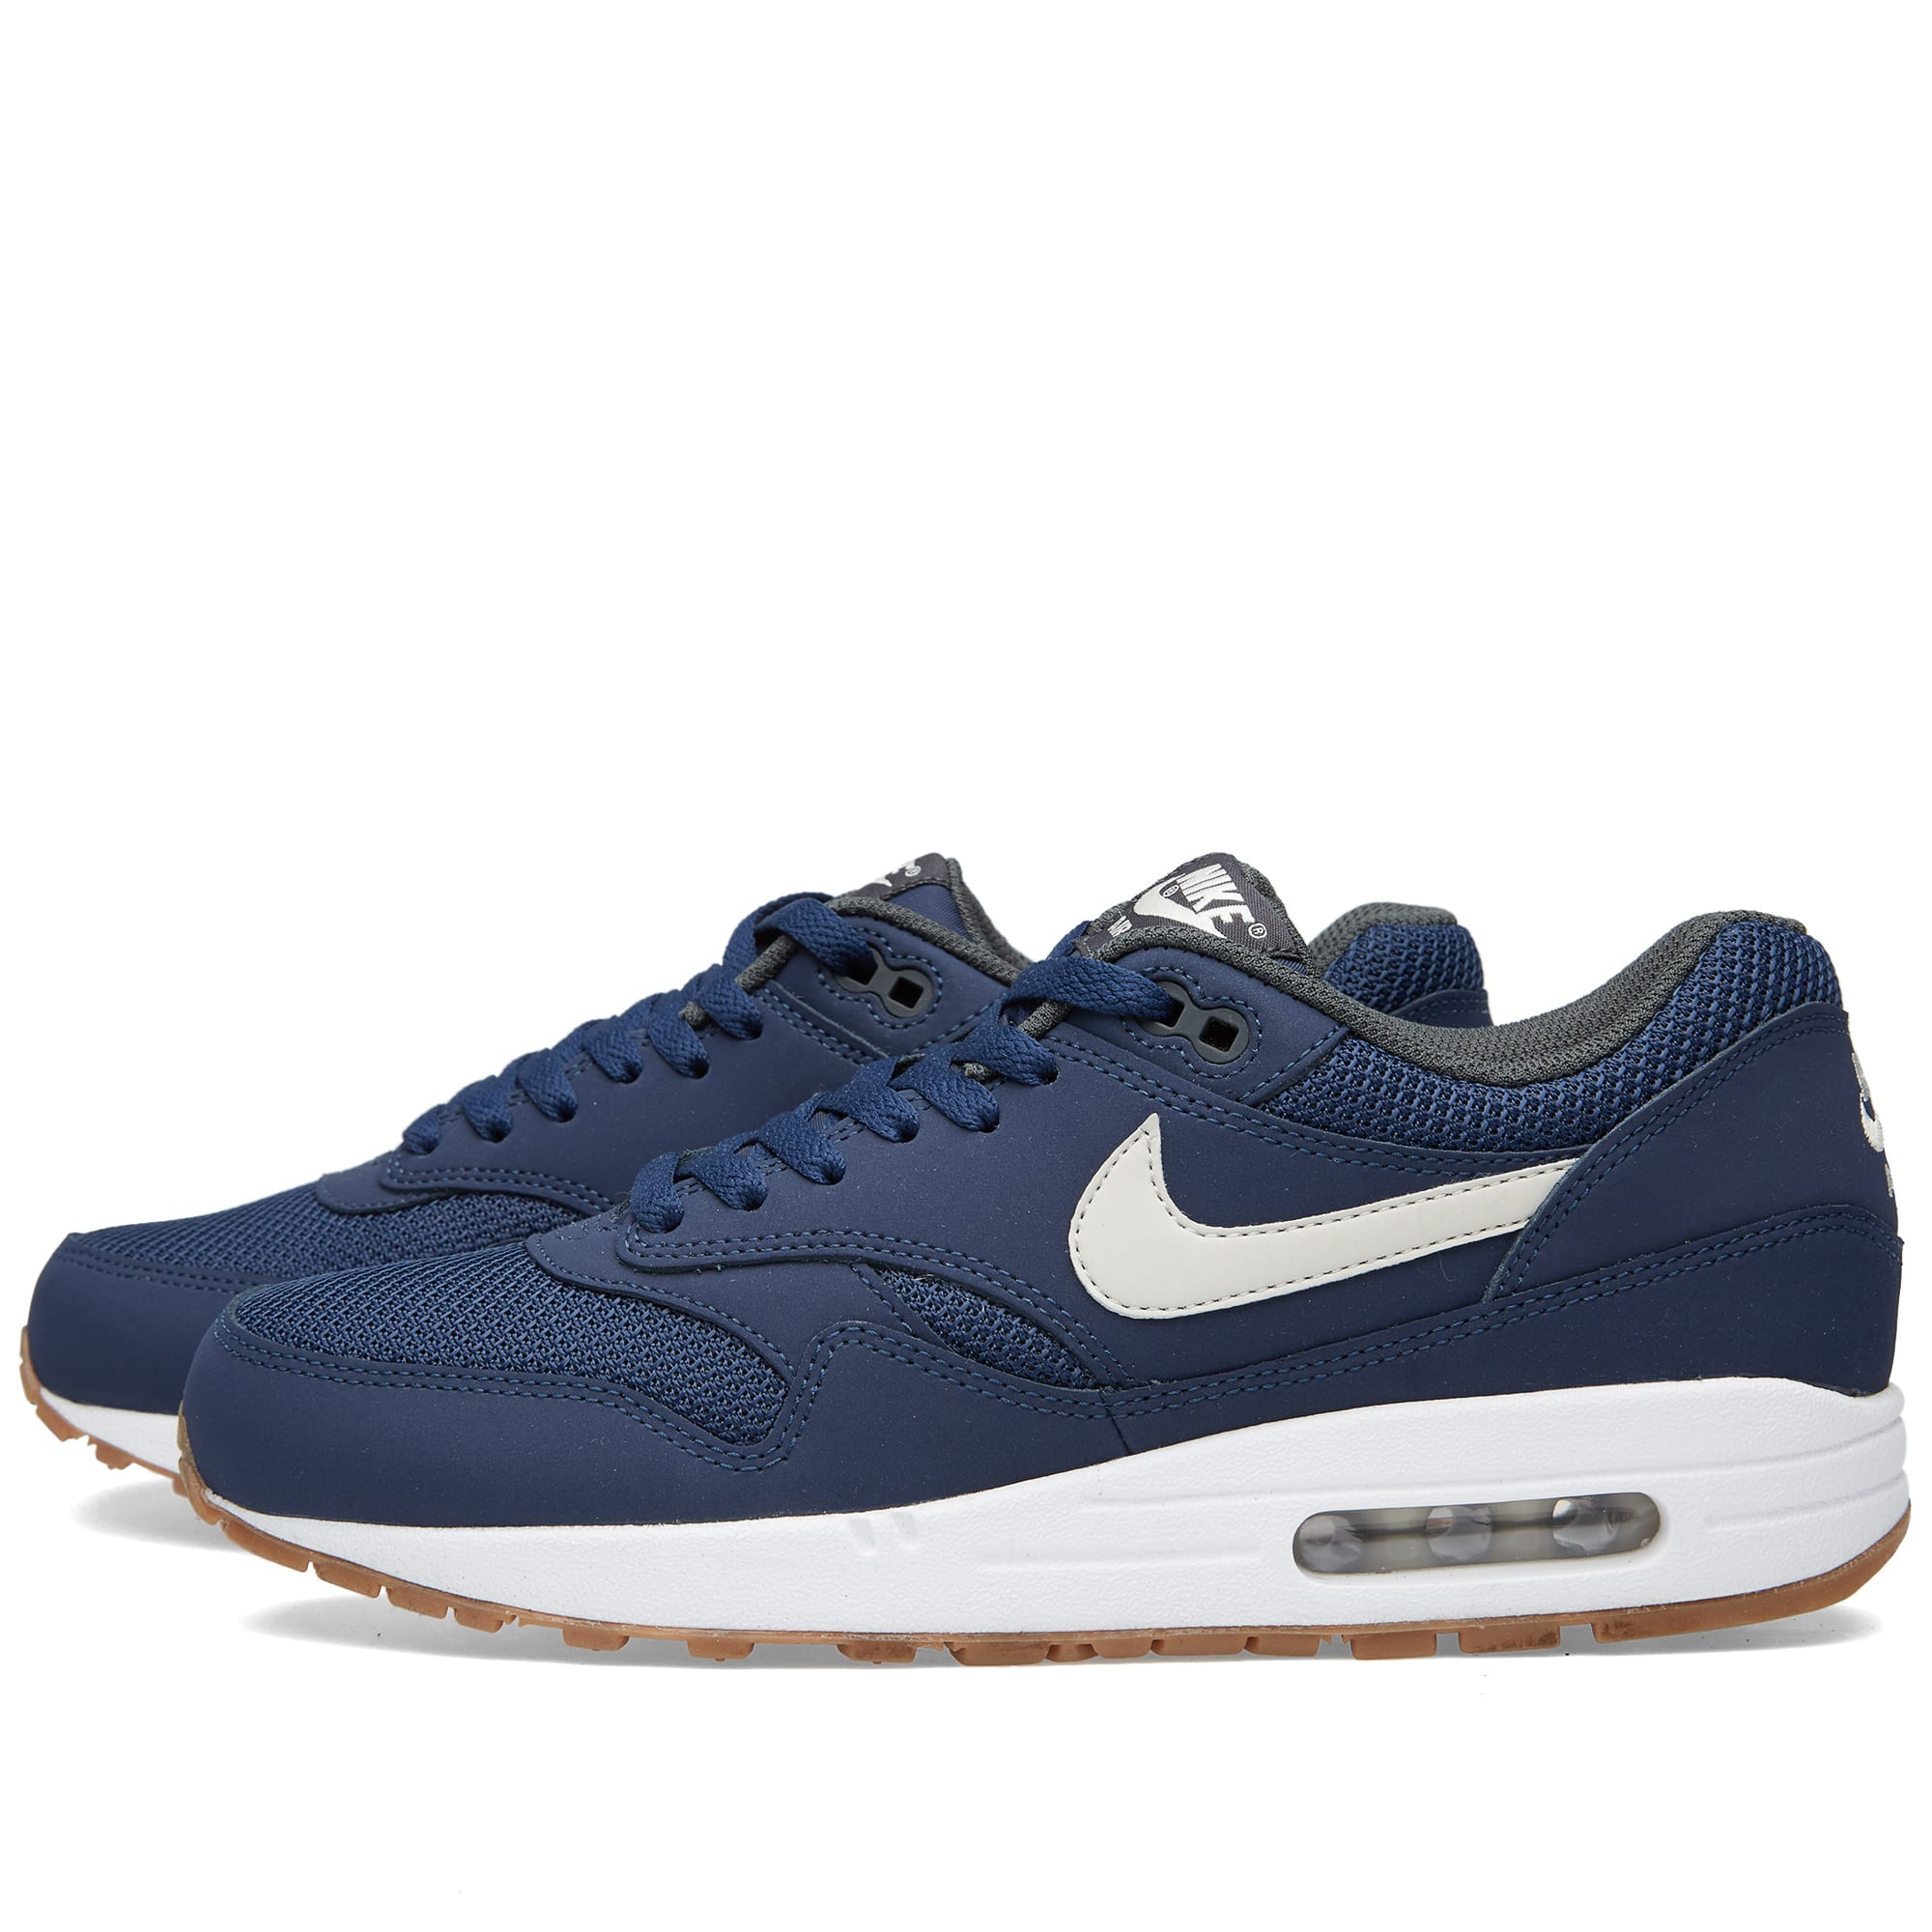 new product 14149 d0d04 Nike Air Max 1 Essential Midnight Navy   White   END.